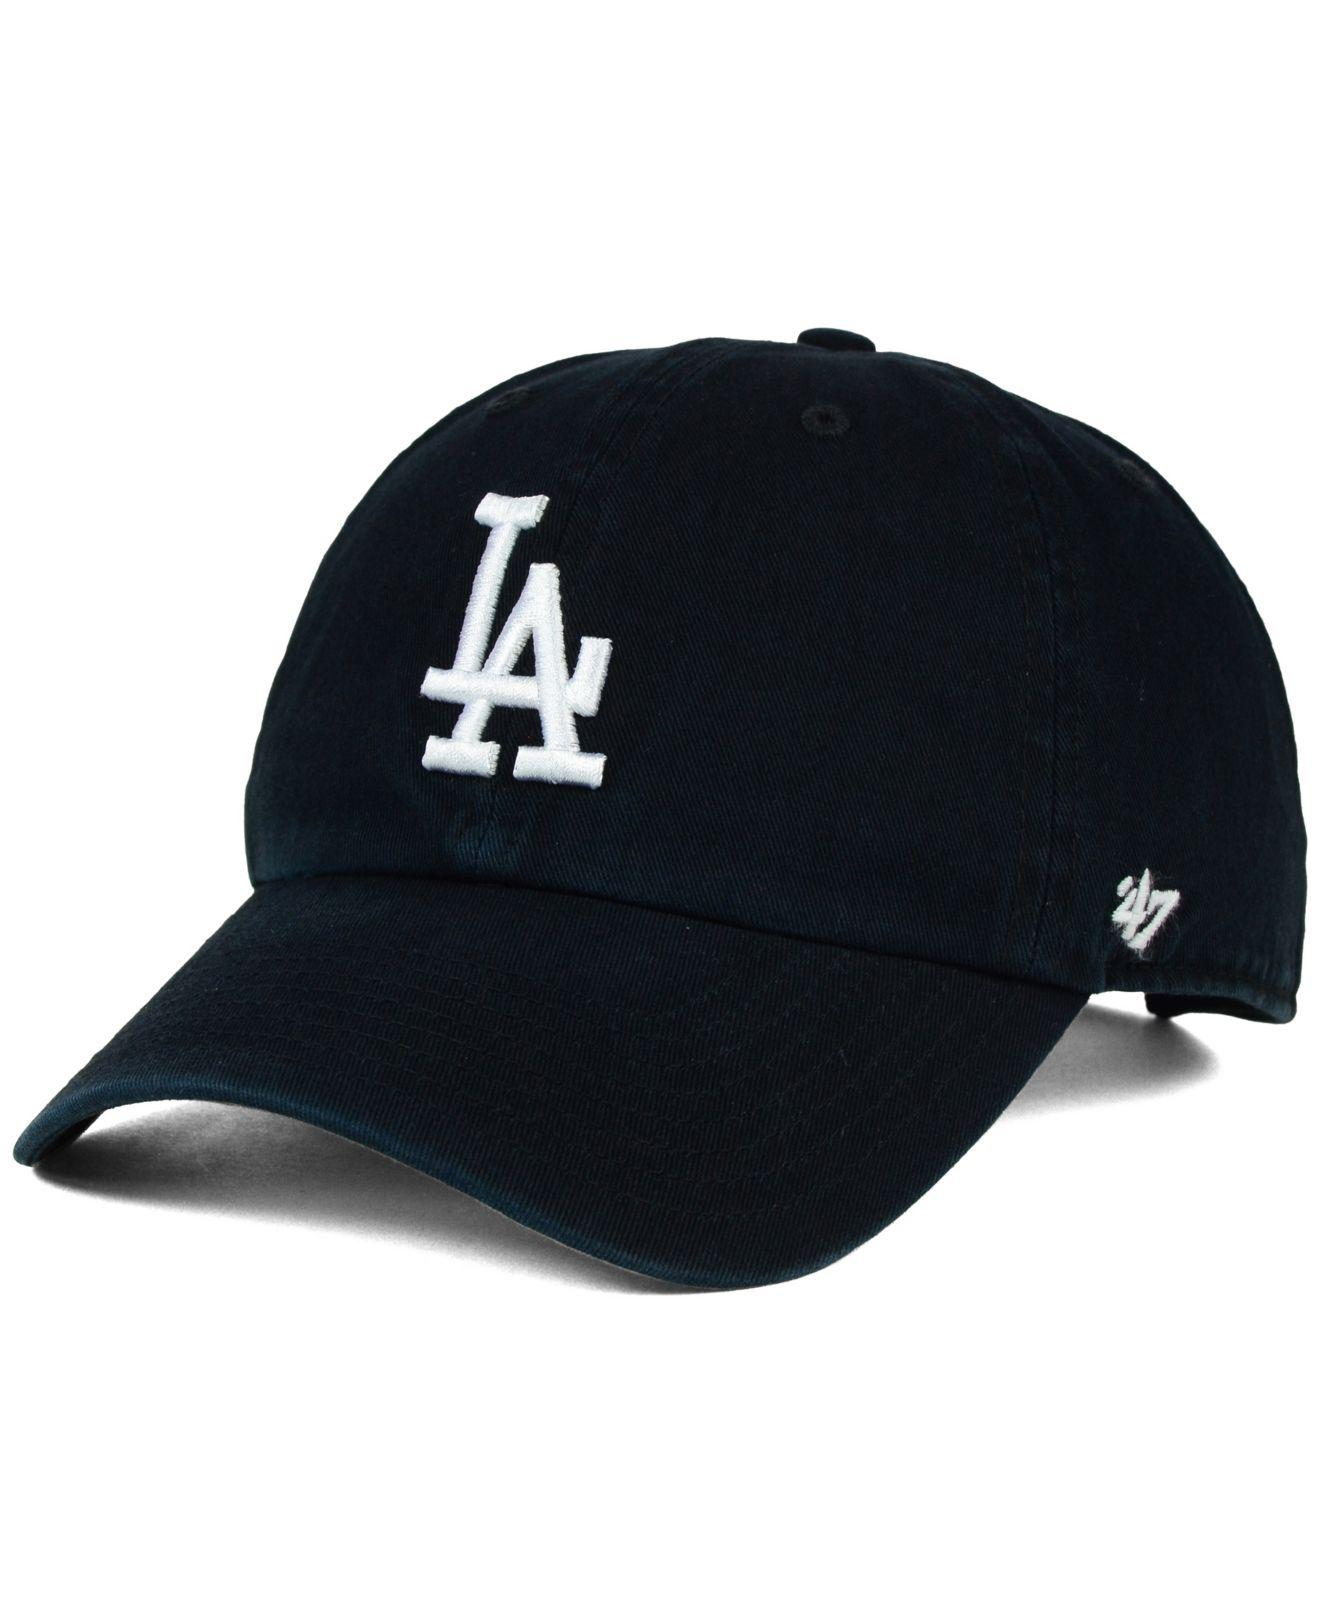 75bed8b31676ea Lyst - 47 Brand Los Angeles Dodgers Core Clean Up Cap in Black for Men